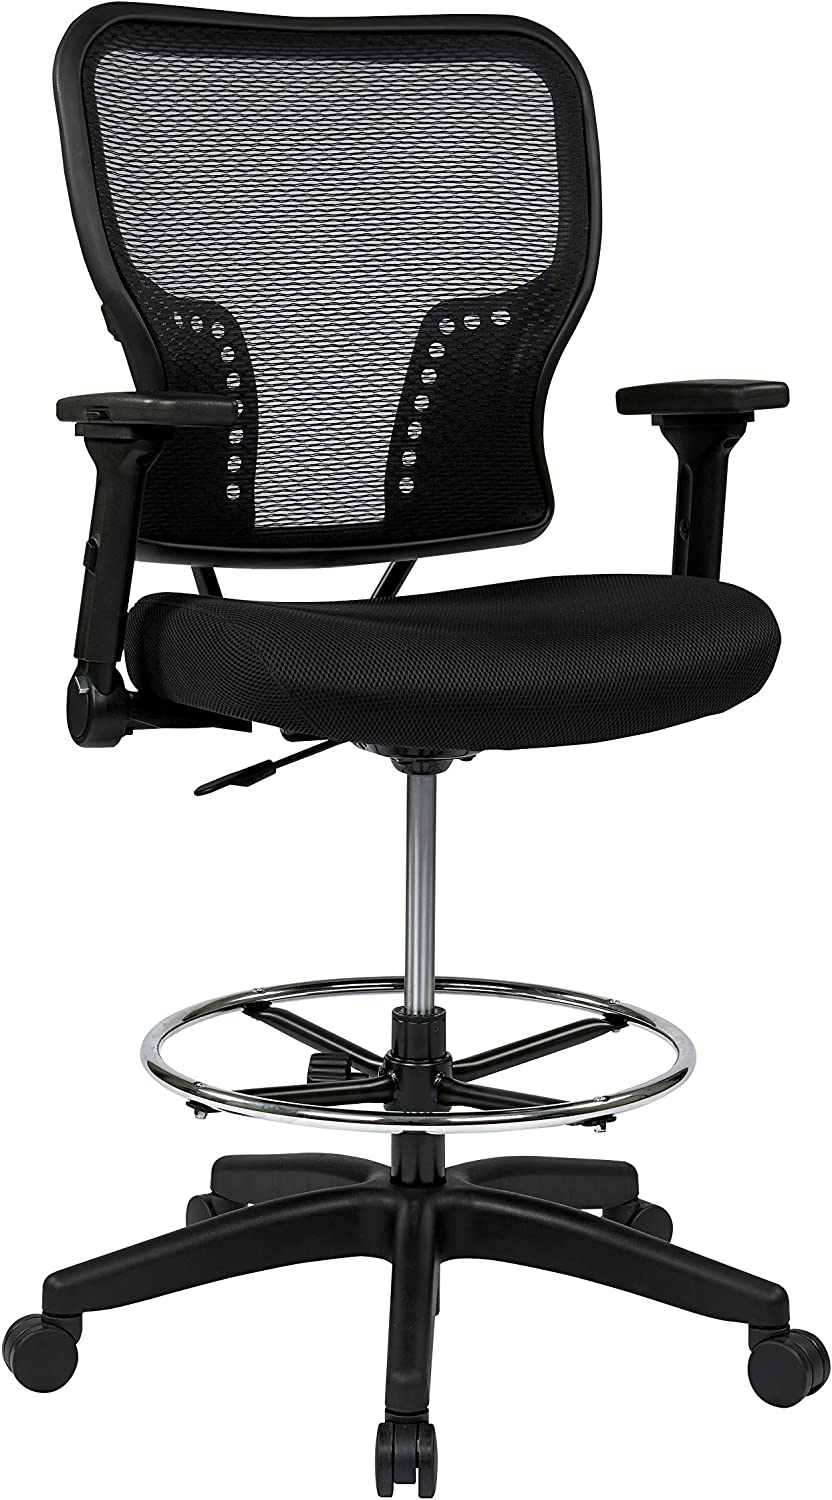 SPACE Seating Deluxe AirGrid Back and Padded Mesh Seat, Pneumatic Seat Height Adjustment and 4-Way Adjustable Flip Arms Managers Chair, Black